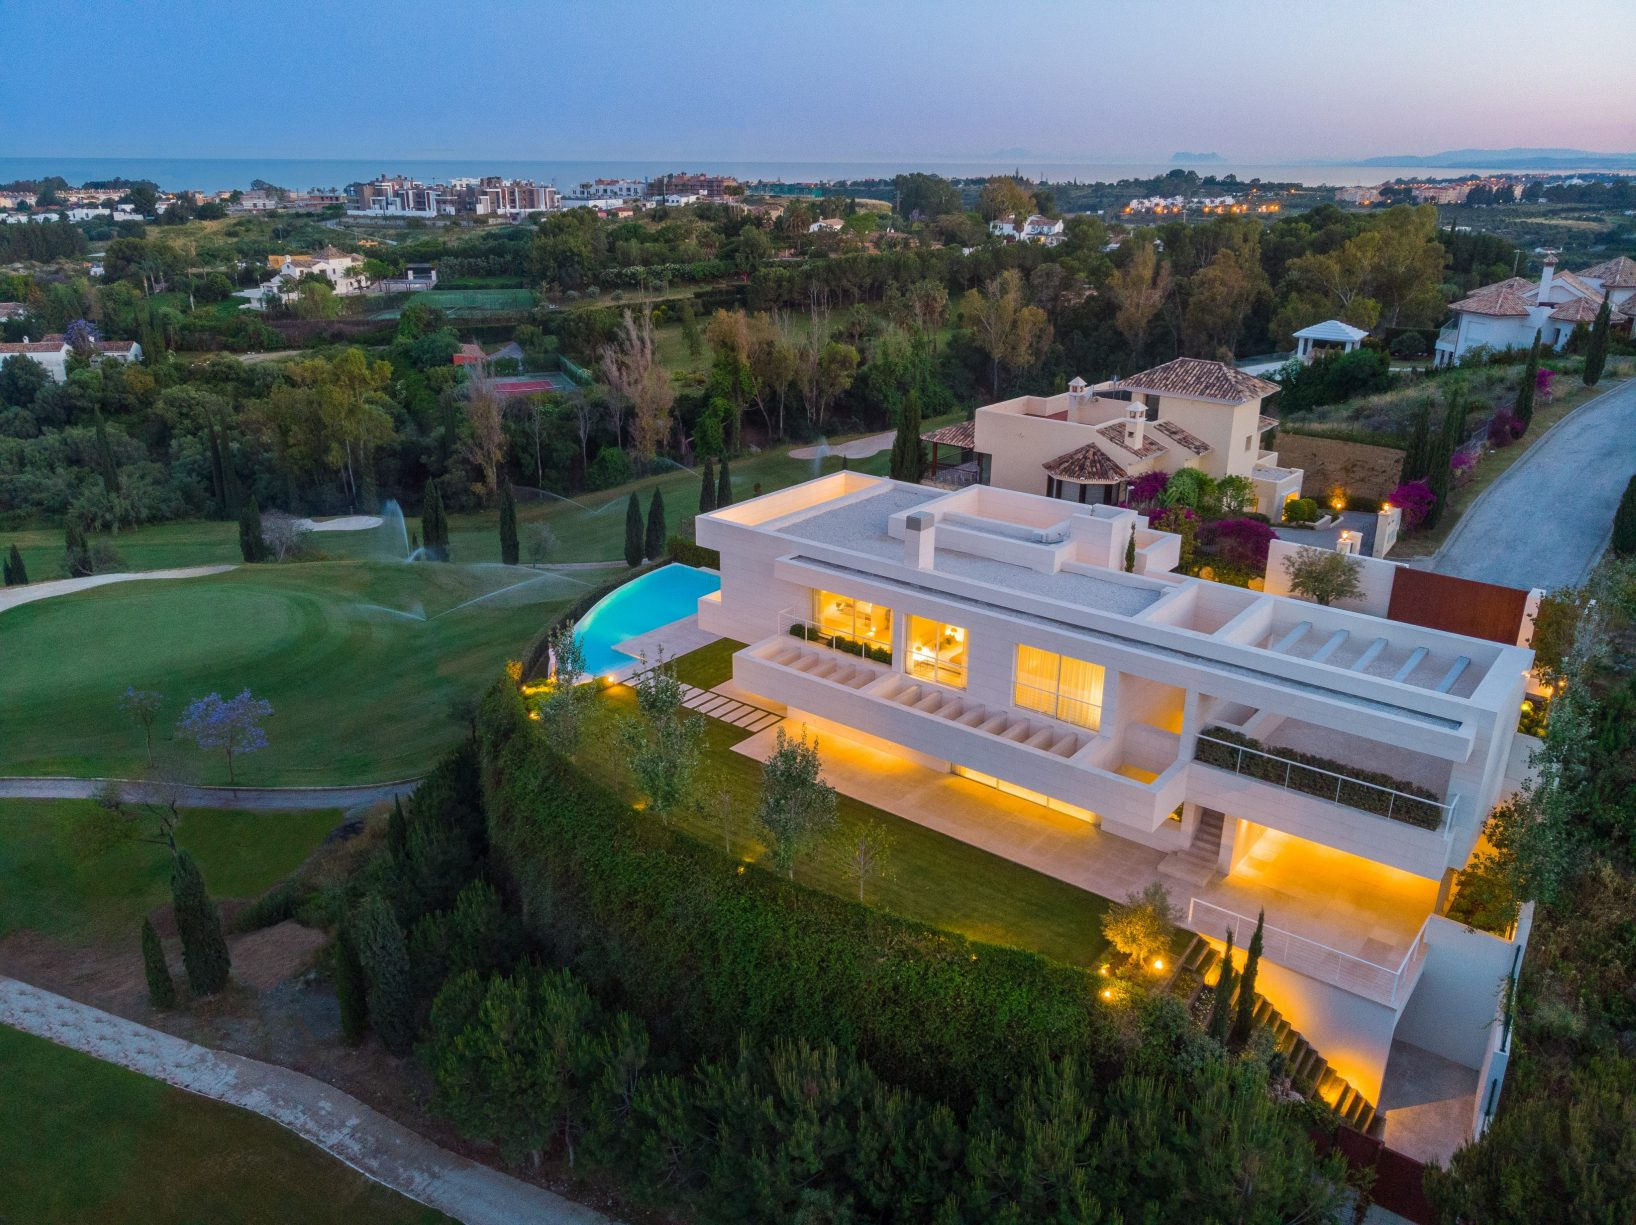 Contemporary frontline golf living, Marbella